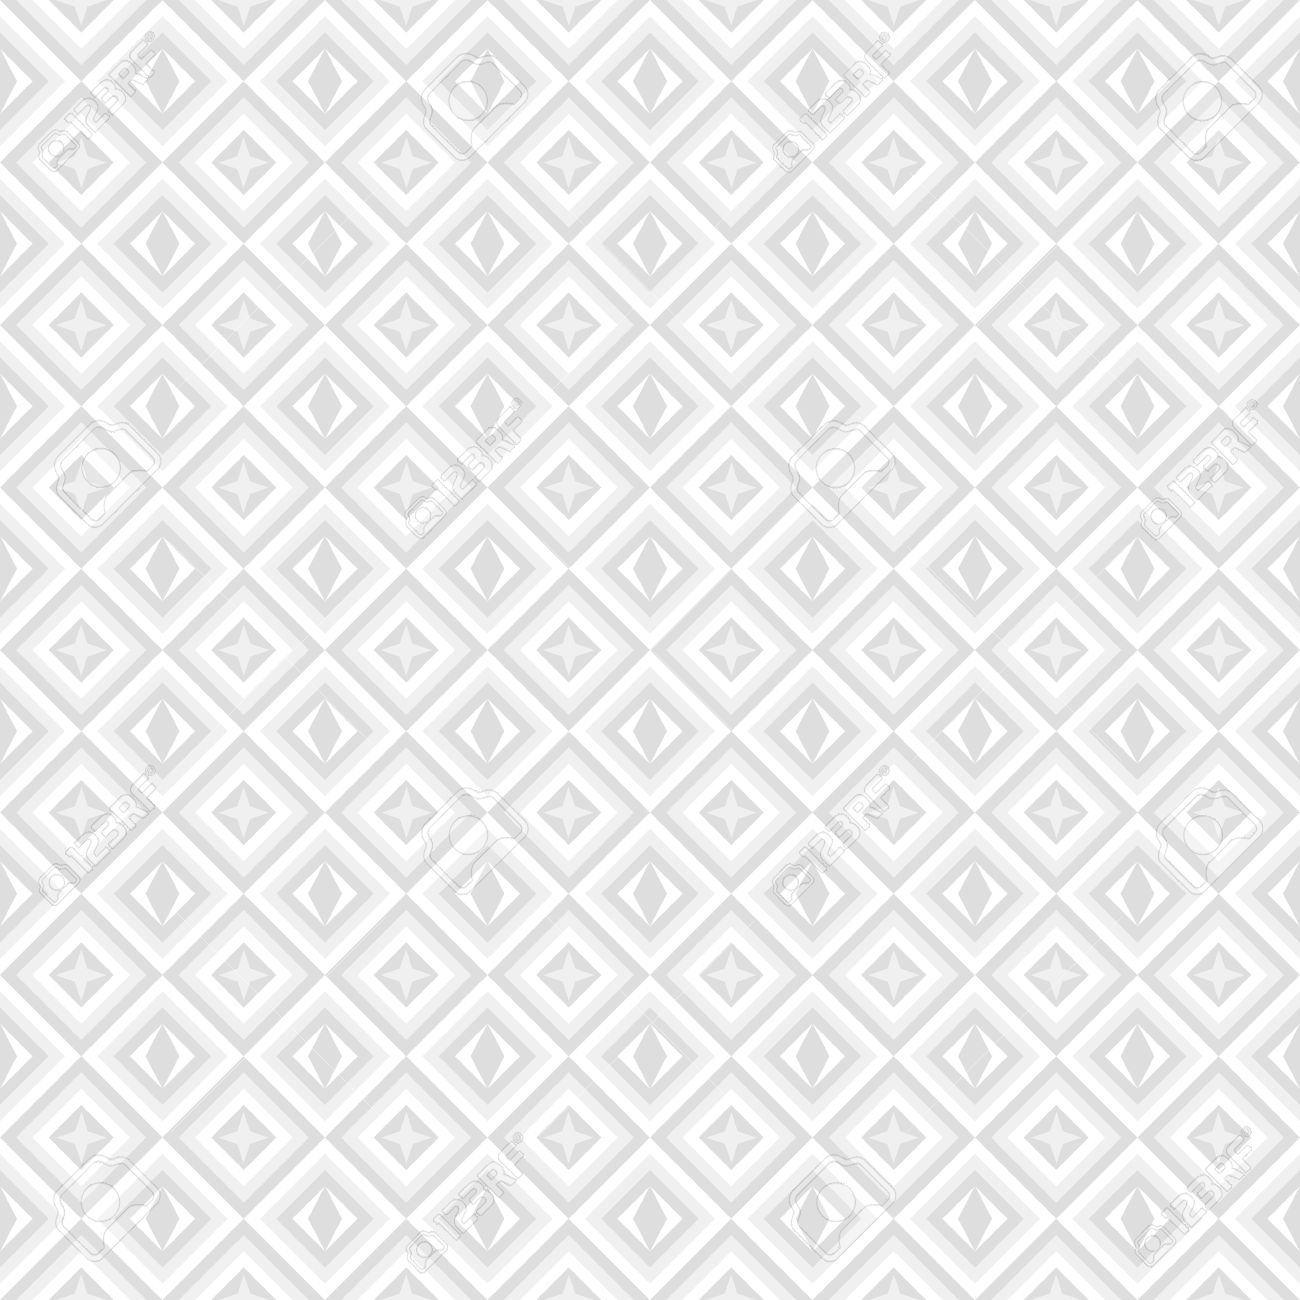 gray and white pattern background photo